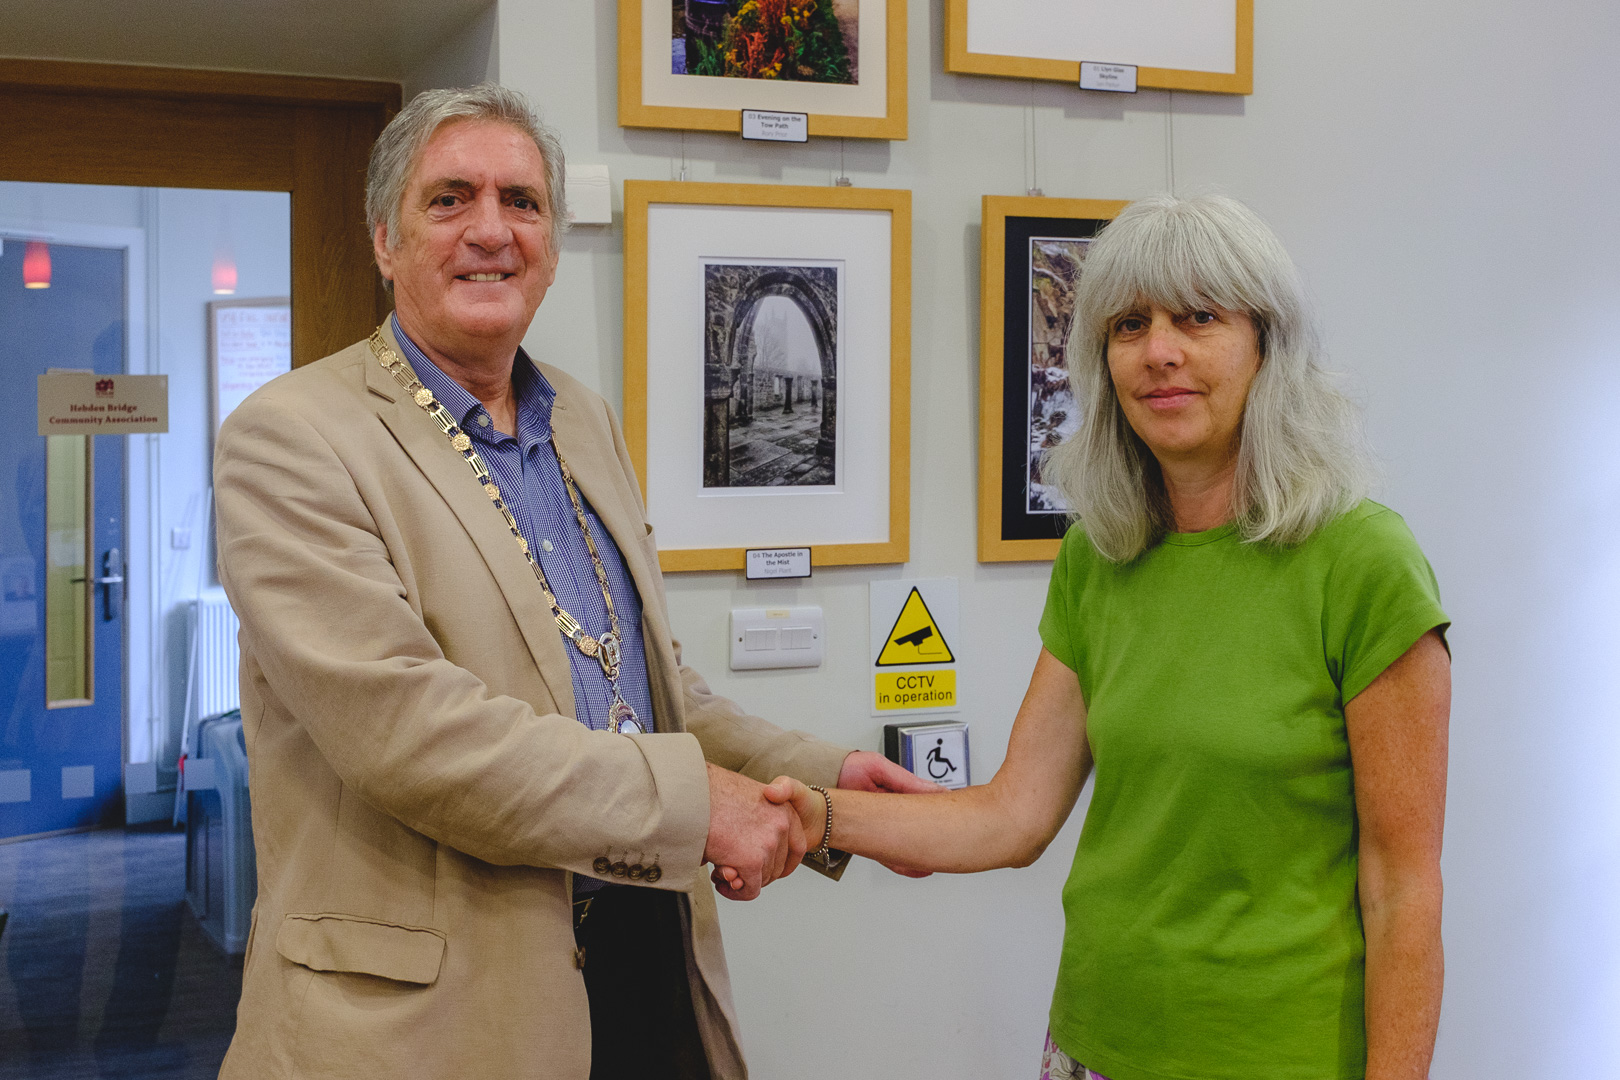 Hebden Royd mayor Tony Hodgins opens the exhibition with club president Judith Baron.